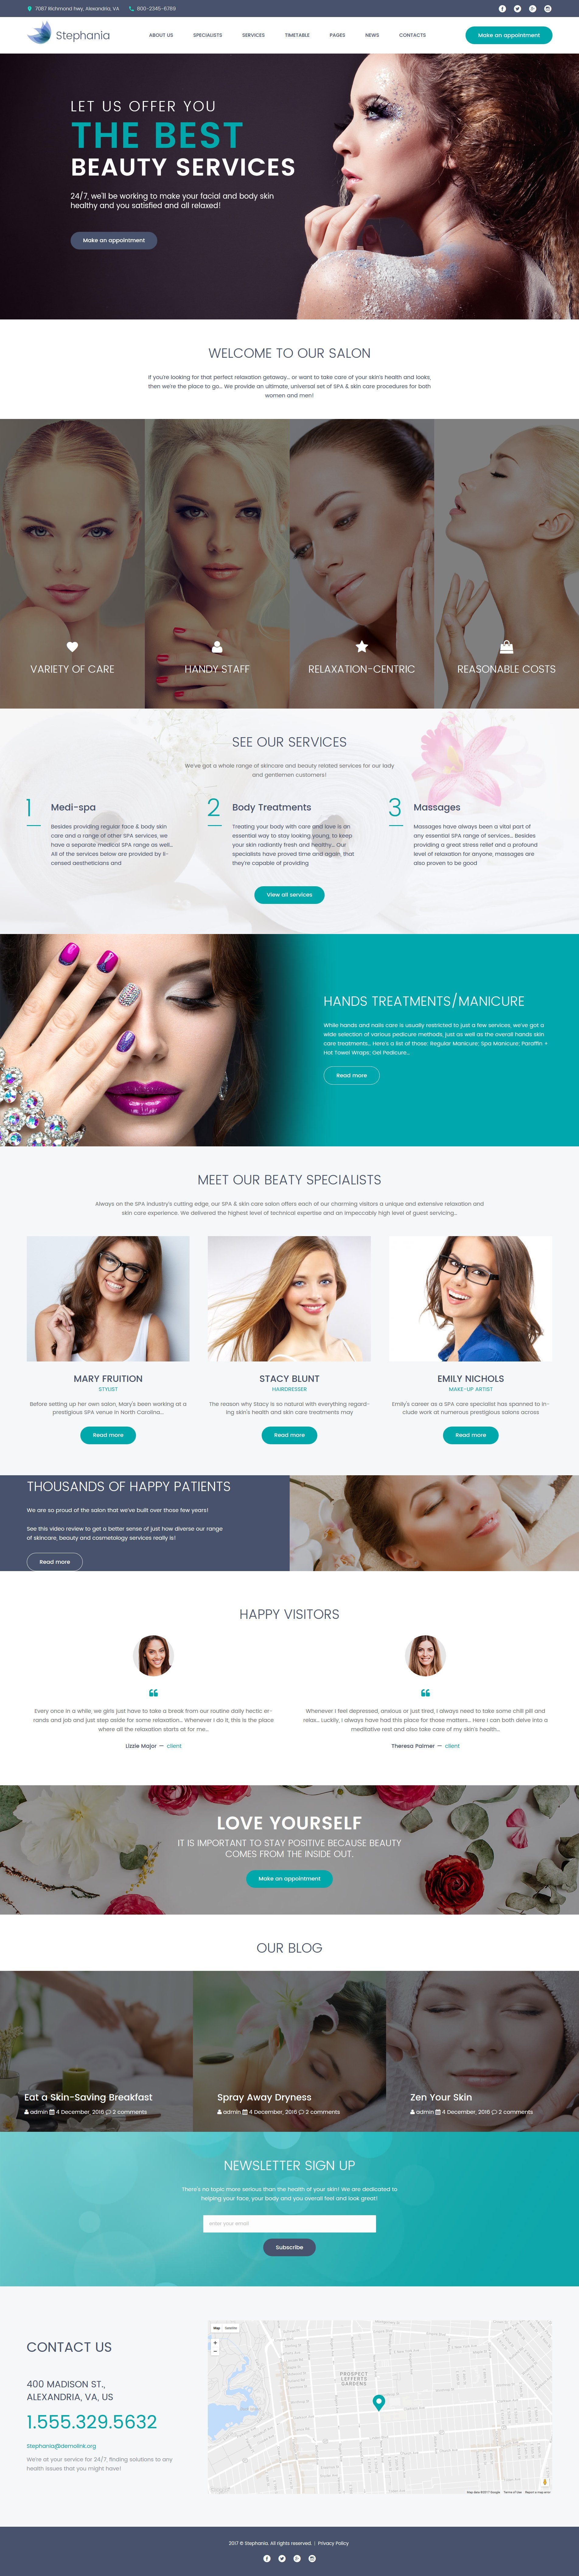 """Stephania - Beauty Salon & Skin Care"" - адаптивний WordPress шаблон №62366 - скріншот"